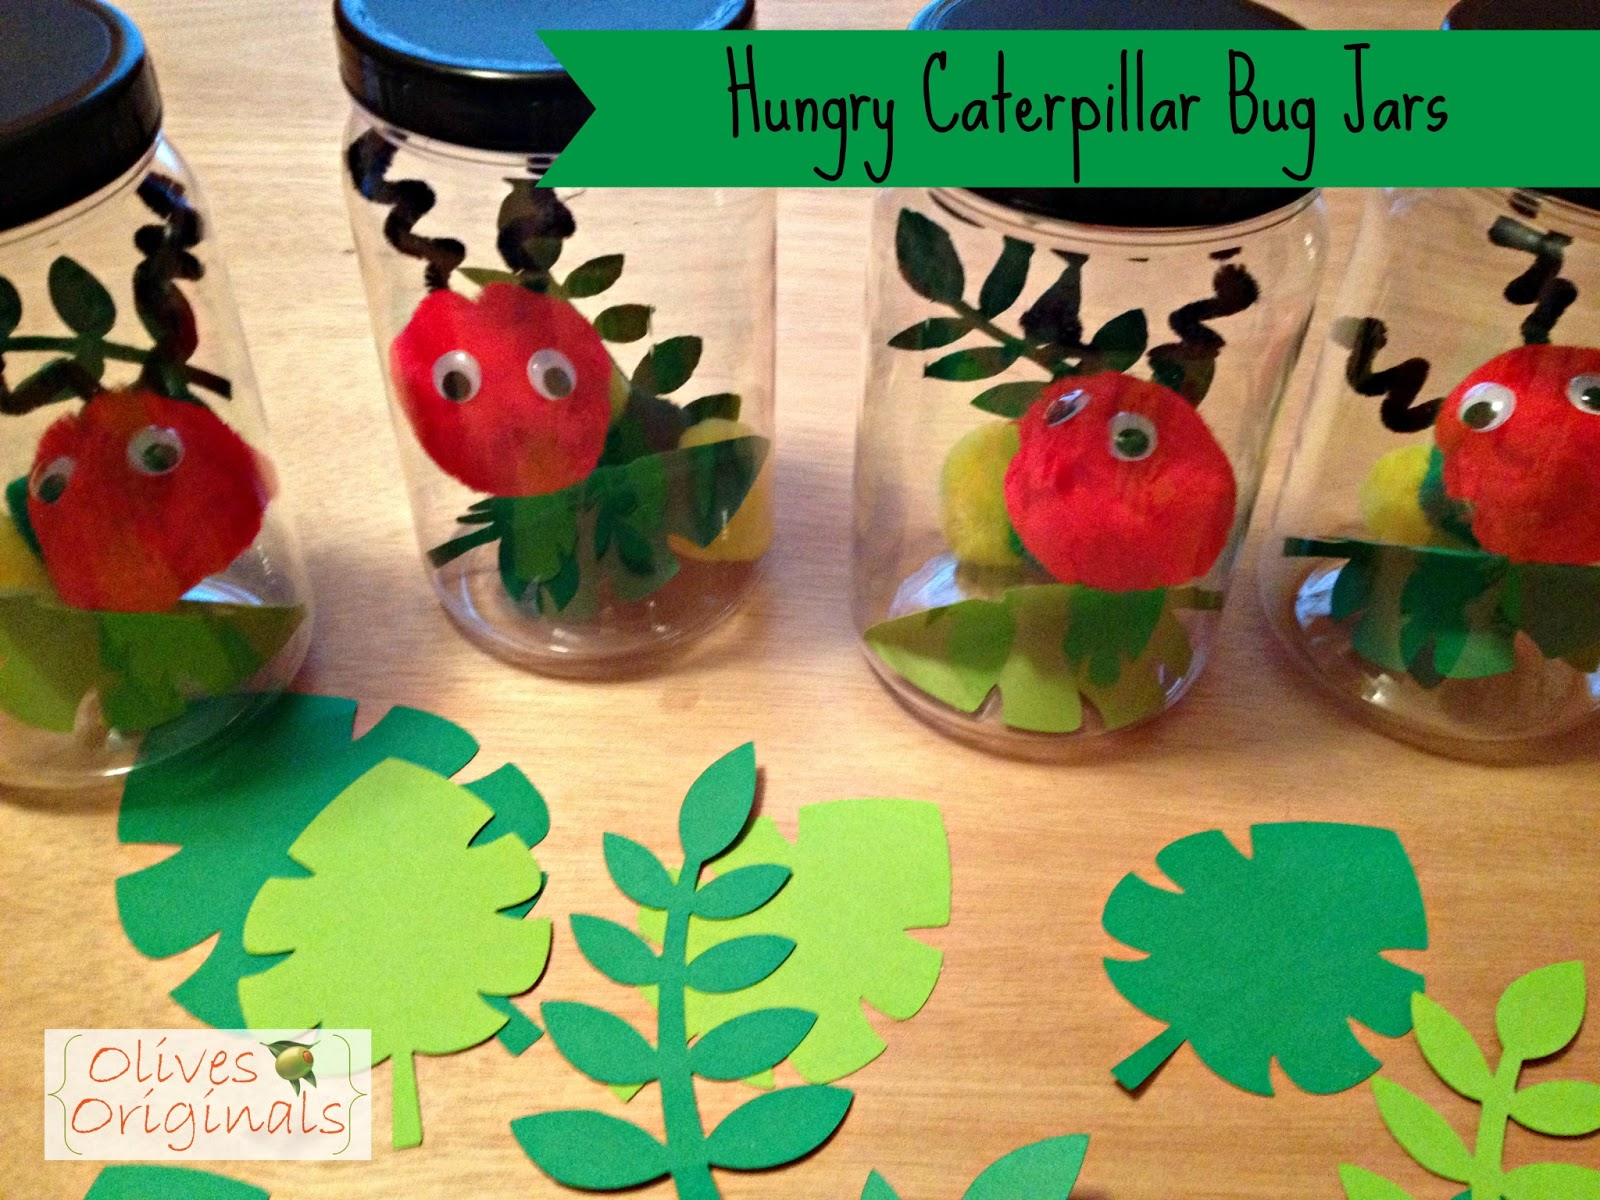 Olives Originals Tutorial Caterpillar Bug Jars